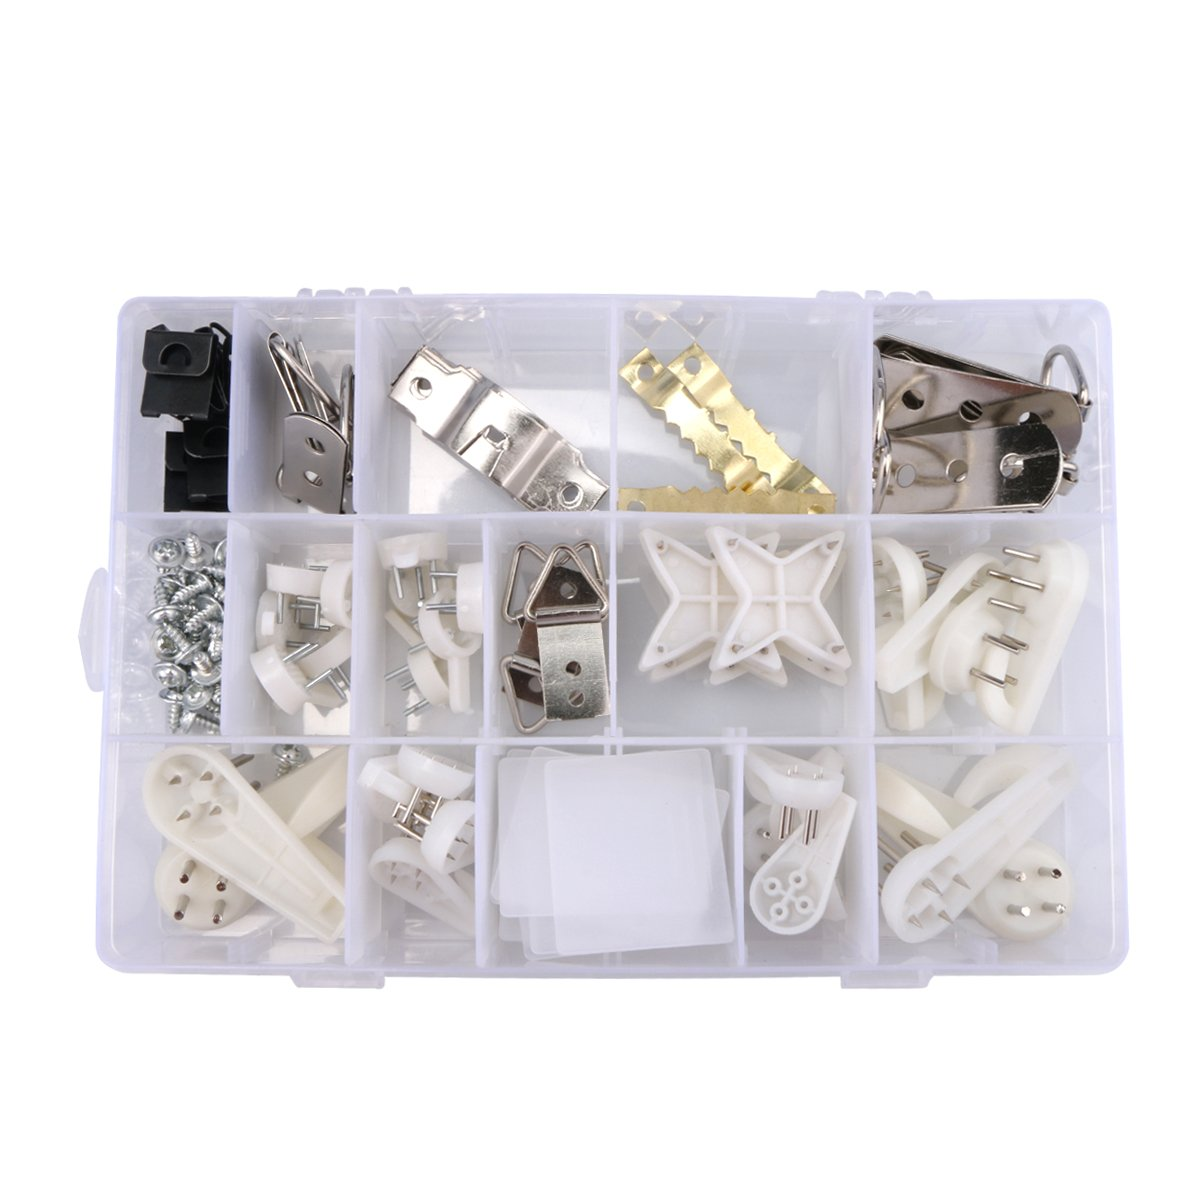 100Pcs Invisible Hardwall Drywall Picture-Hanging Hooks Clock Hanger Non-Trace Photo Frame hangers Hanging Assortment Kit